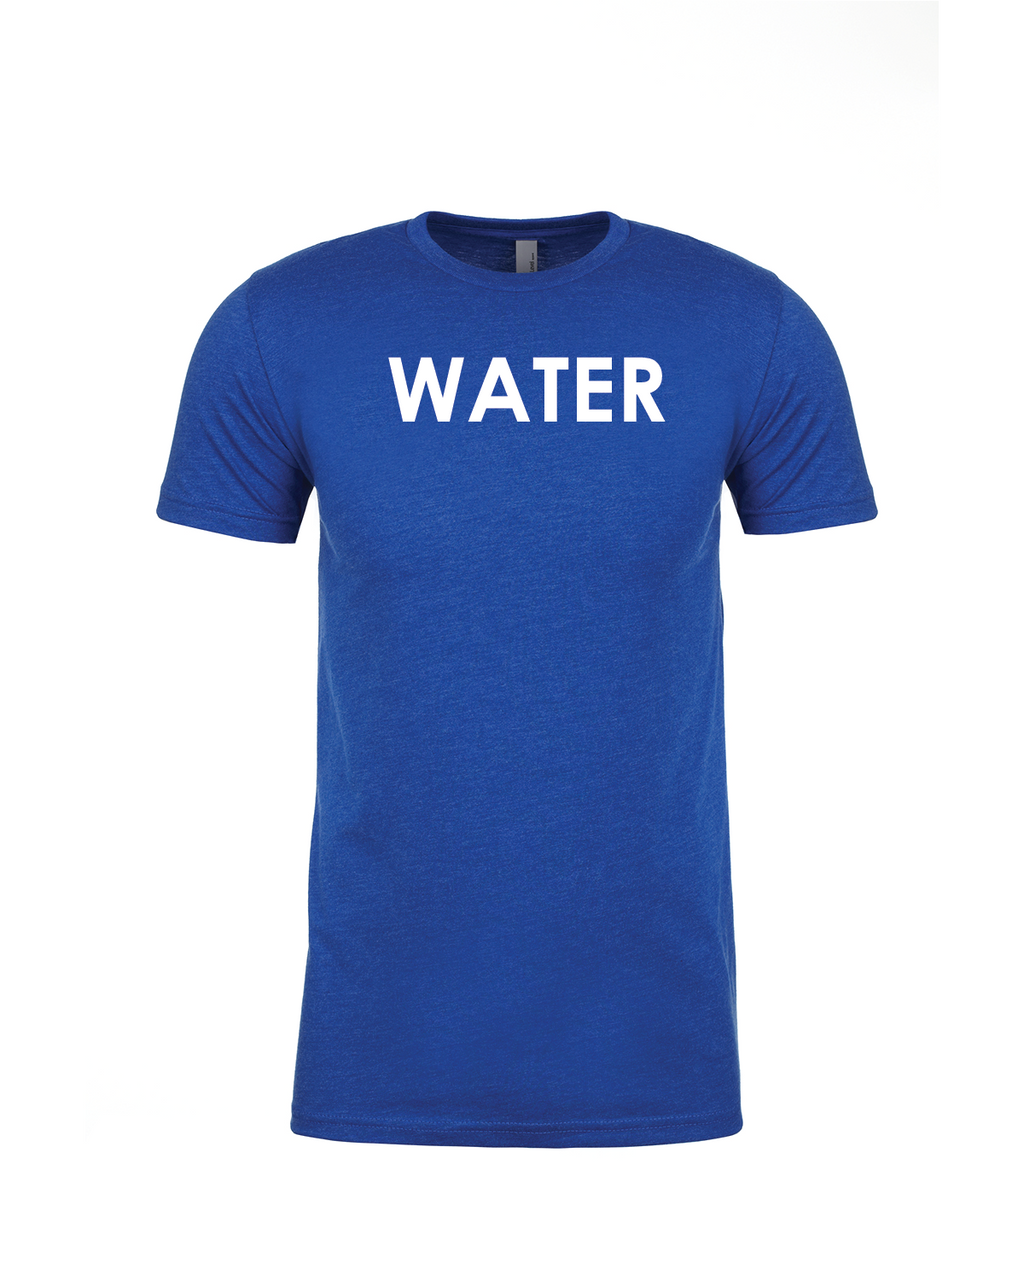 WATER - Premium Fitted Short-Sleeve Crew